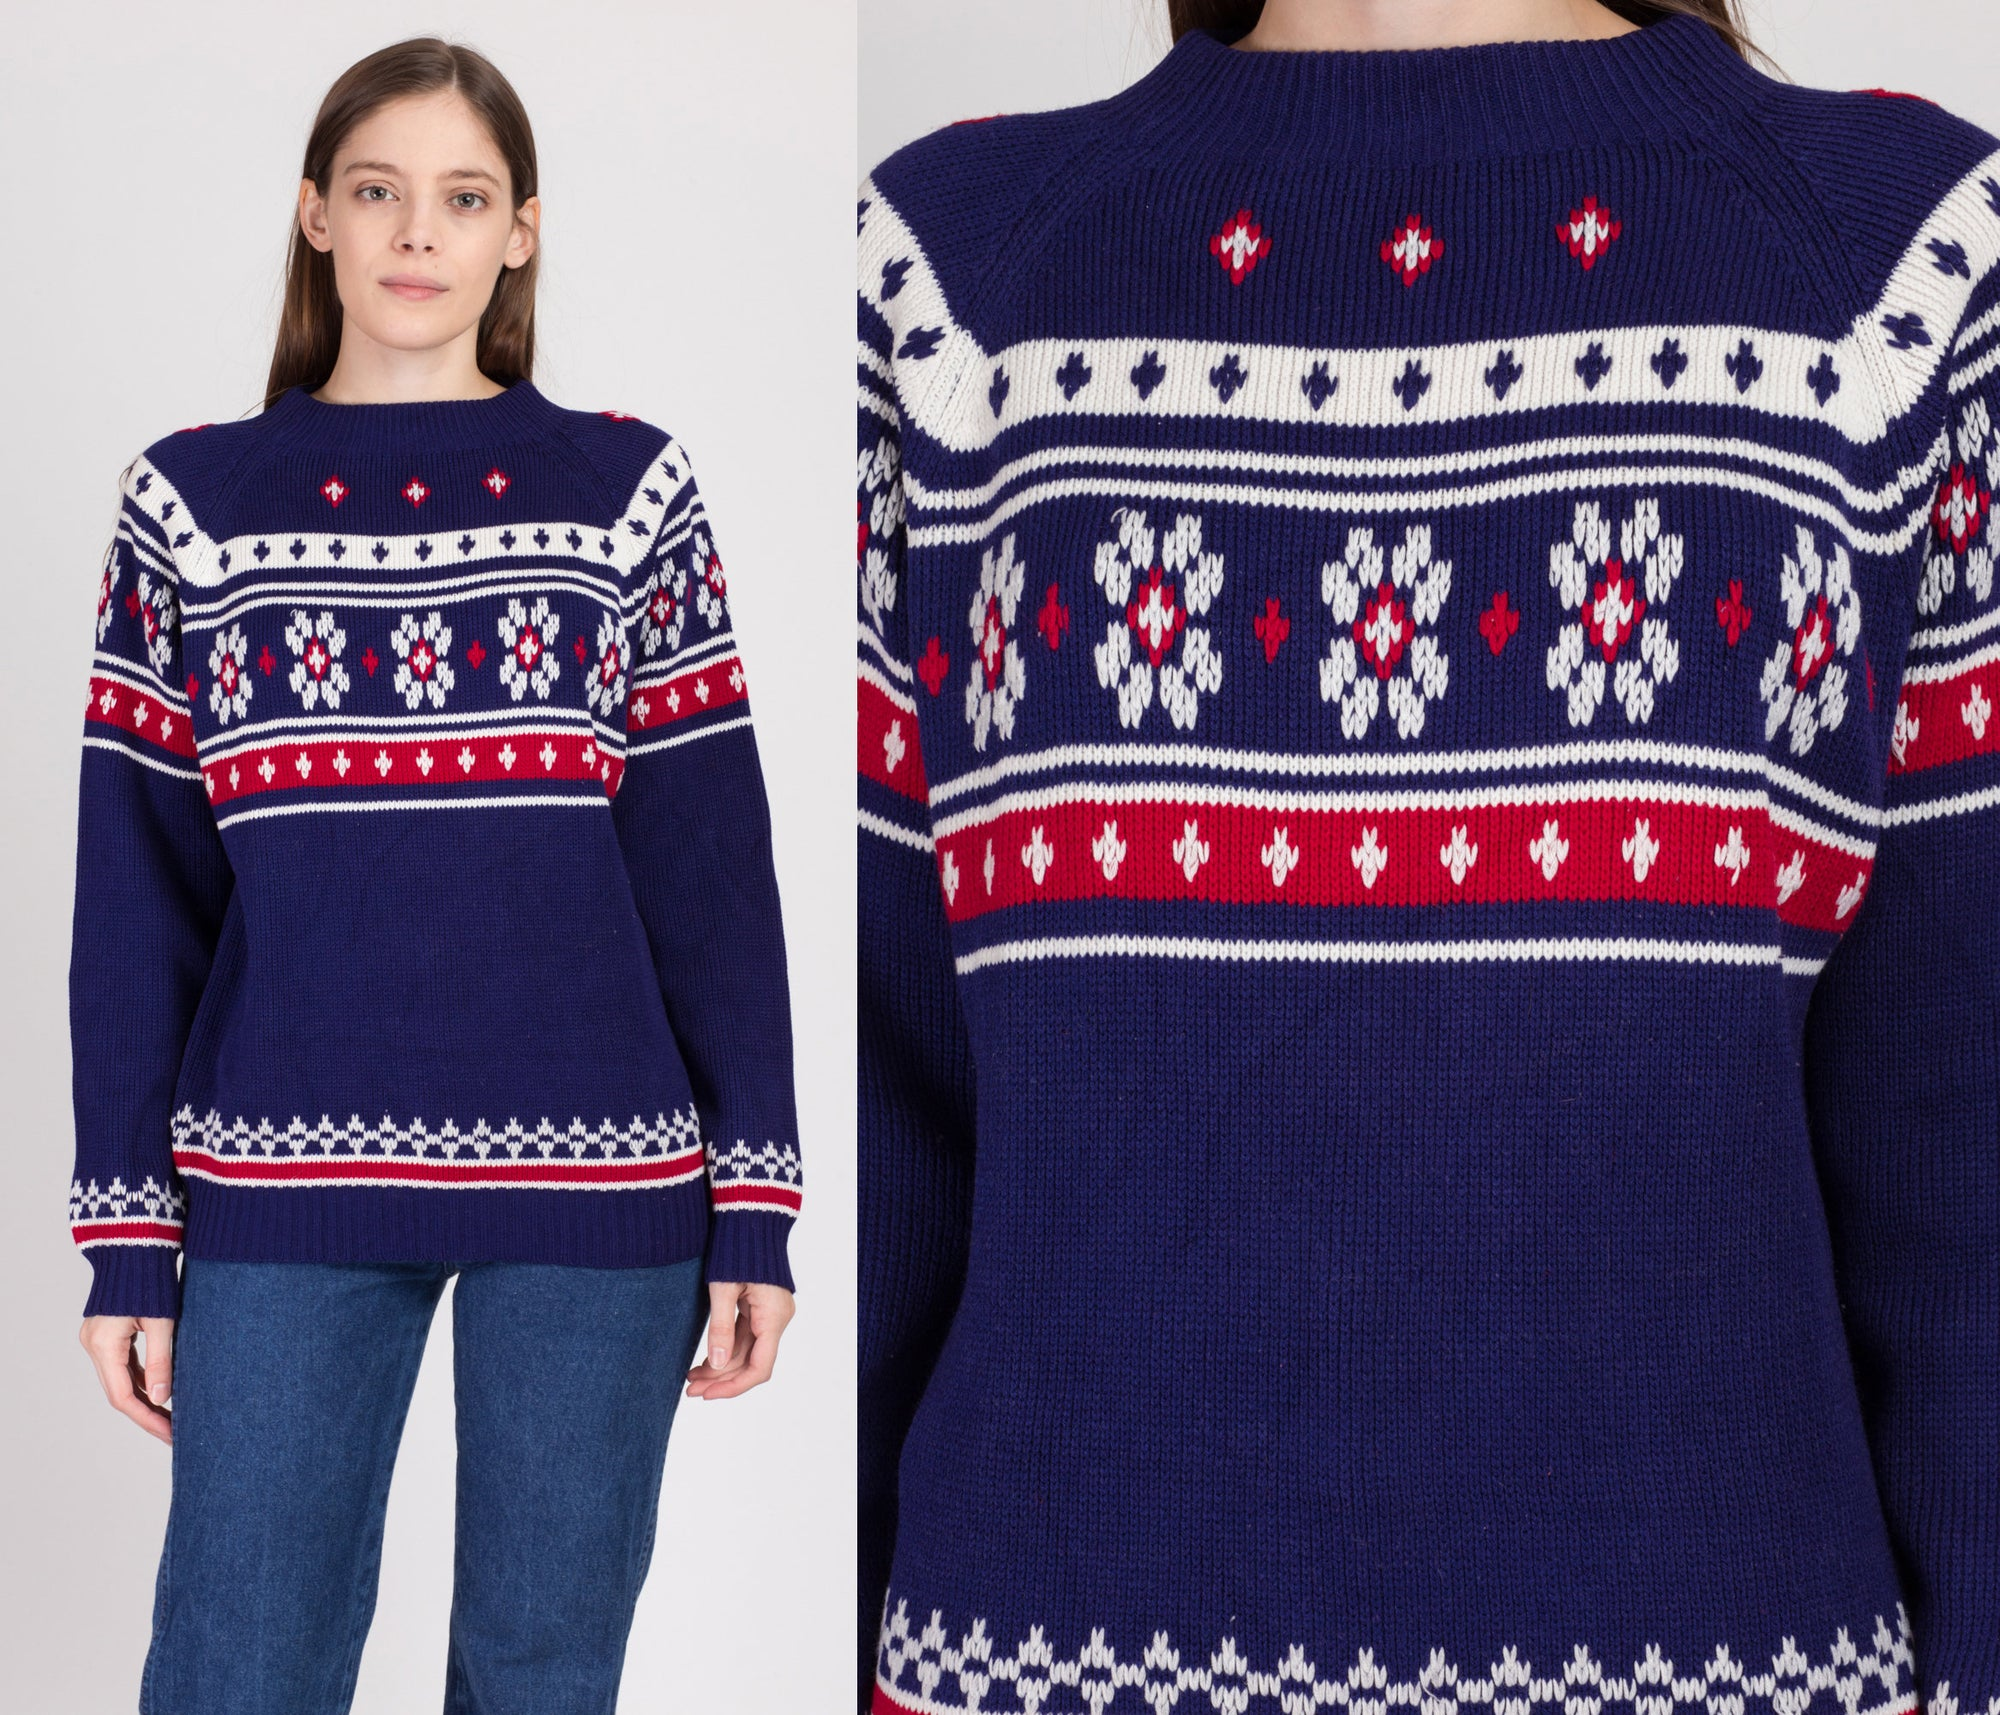 Vintage Fair Isle Ski Sweater - Large